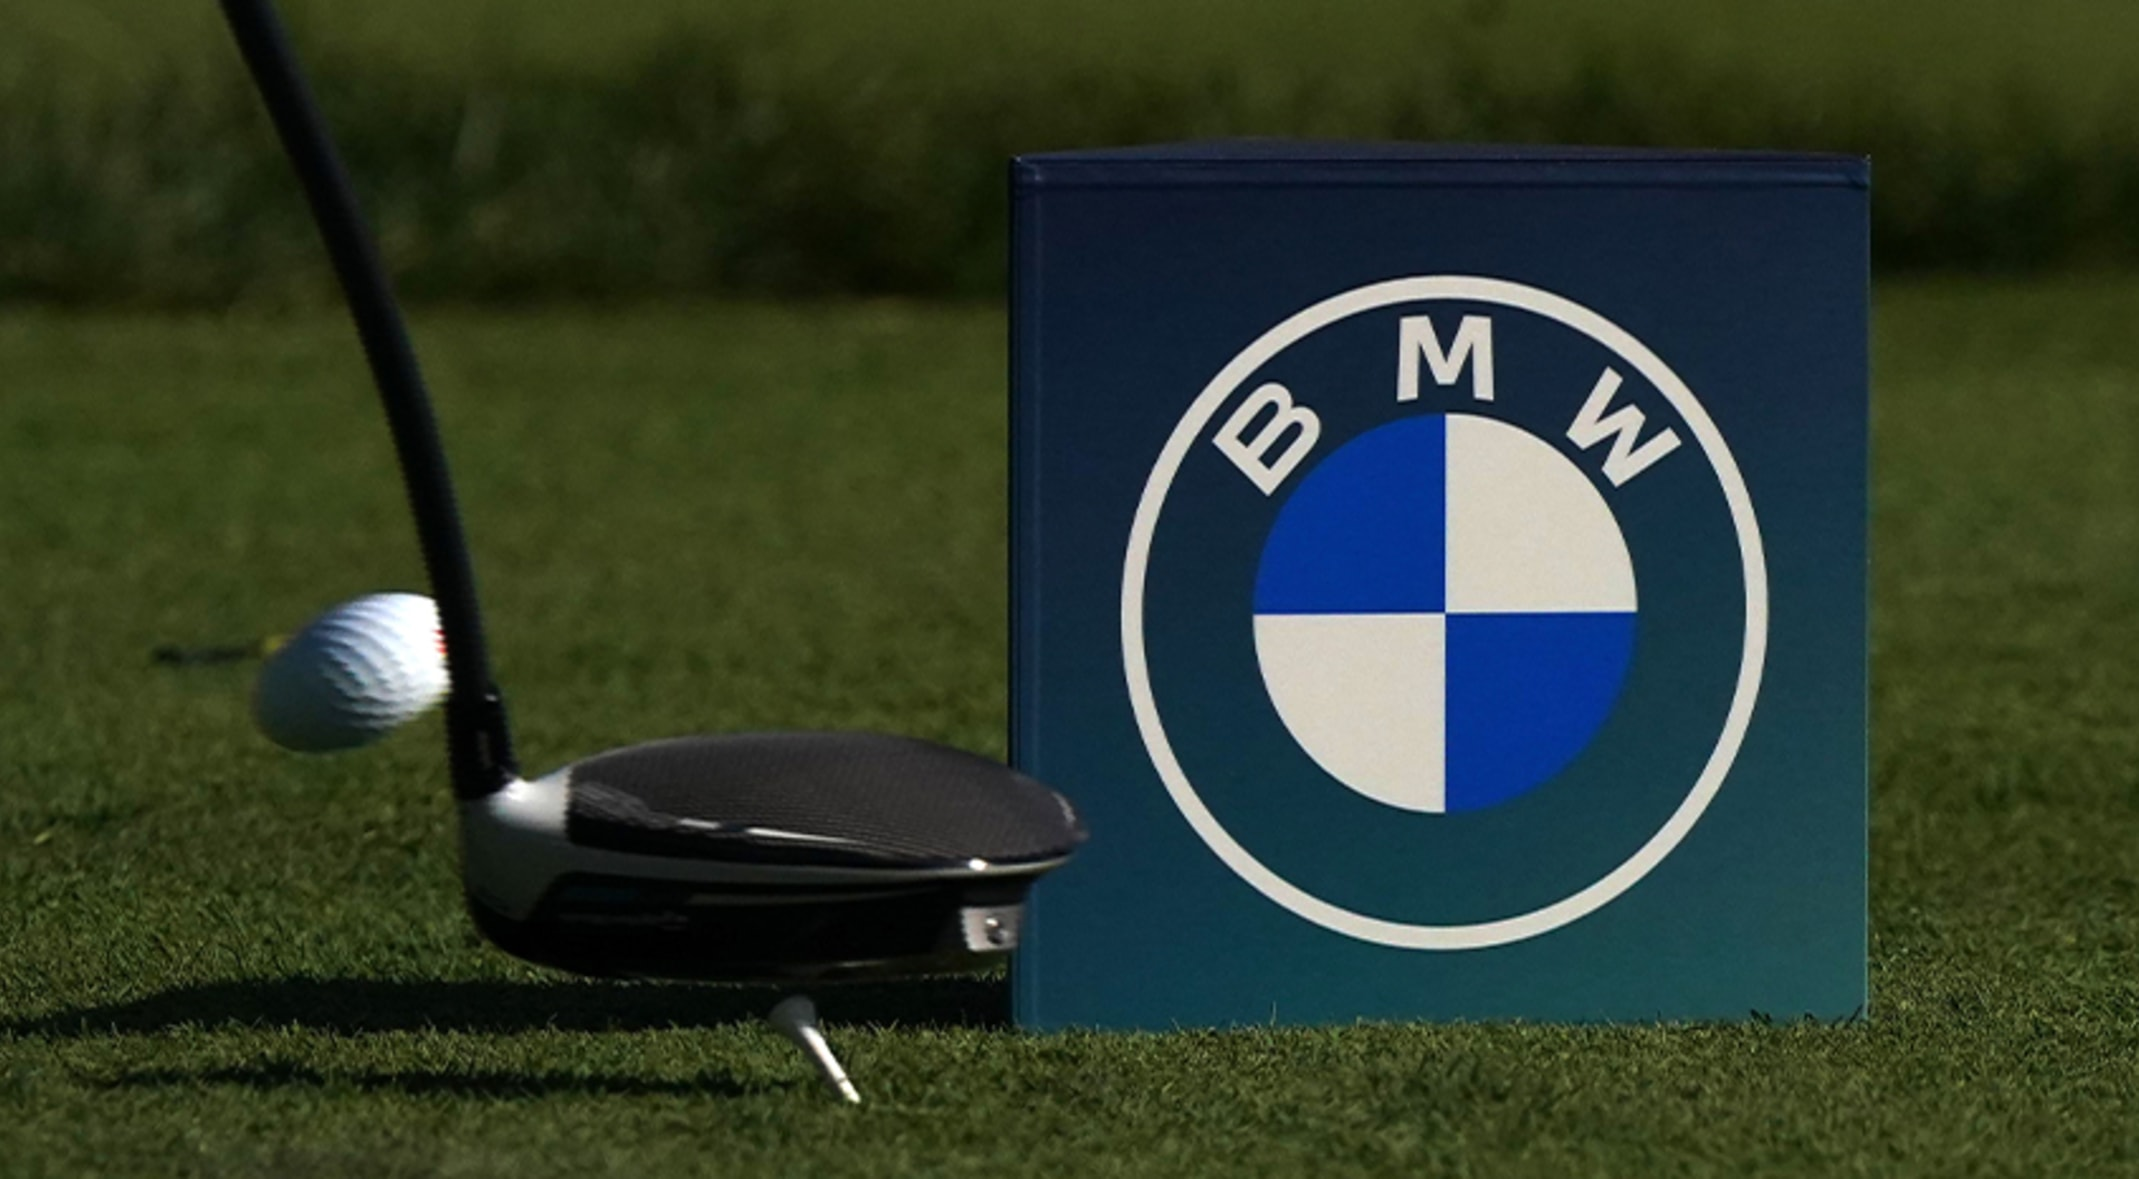 Bmw Championship Round 3 Leaderboard Tee Times Tv Times